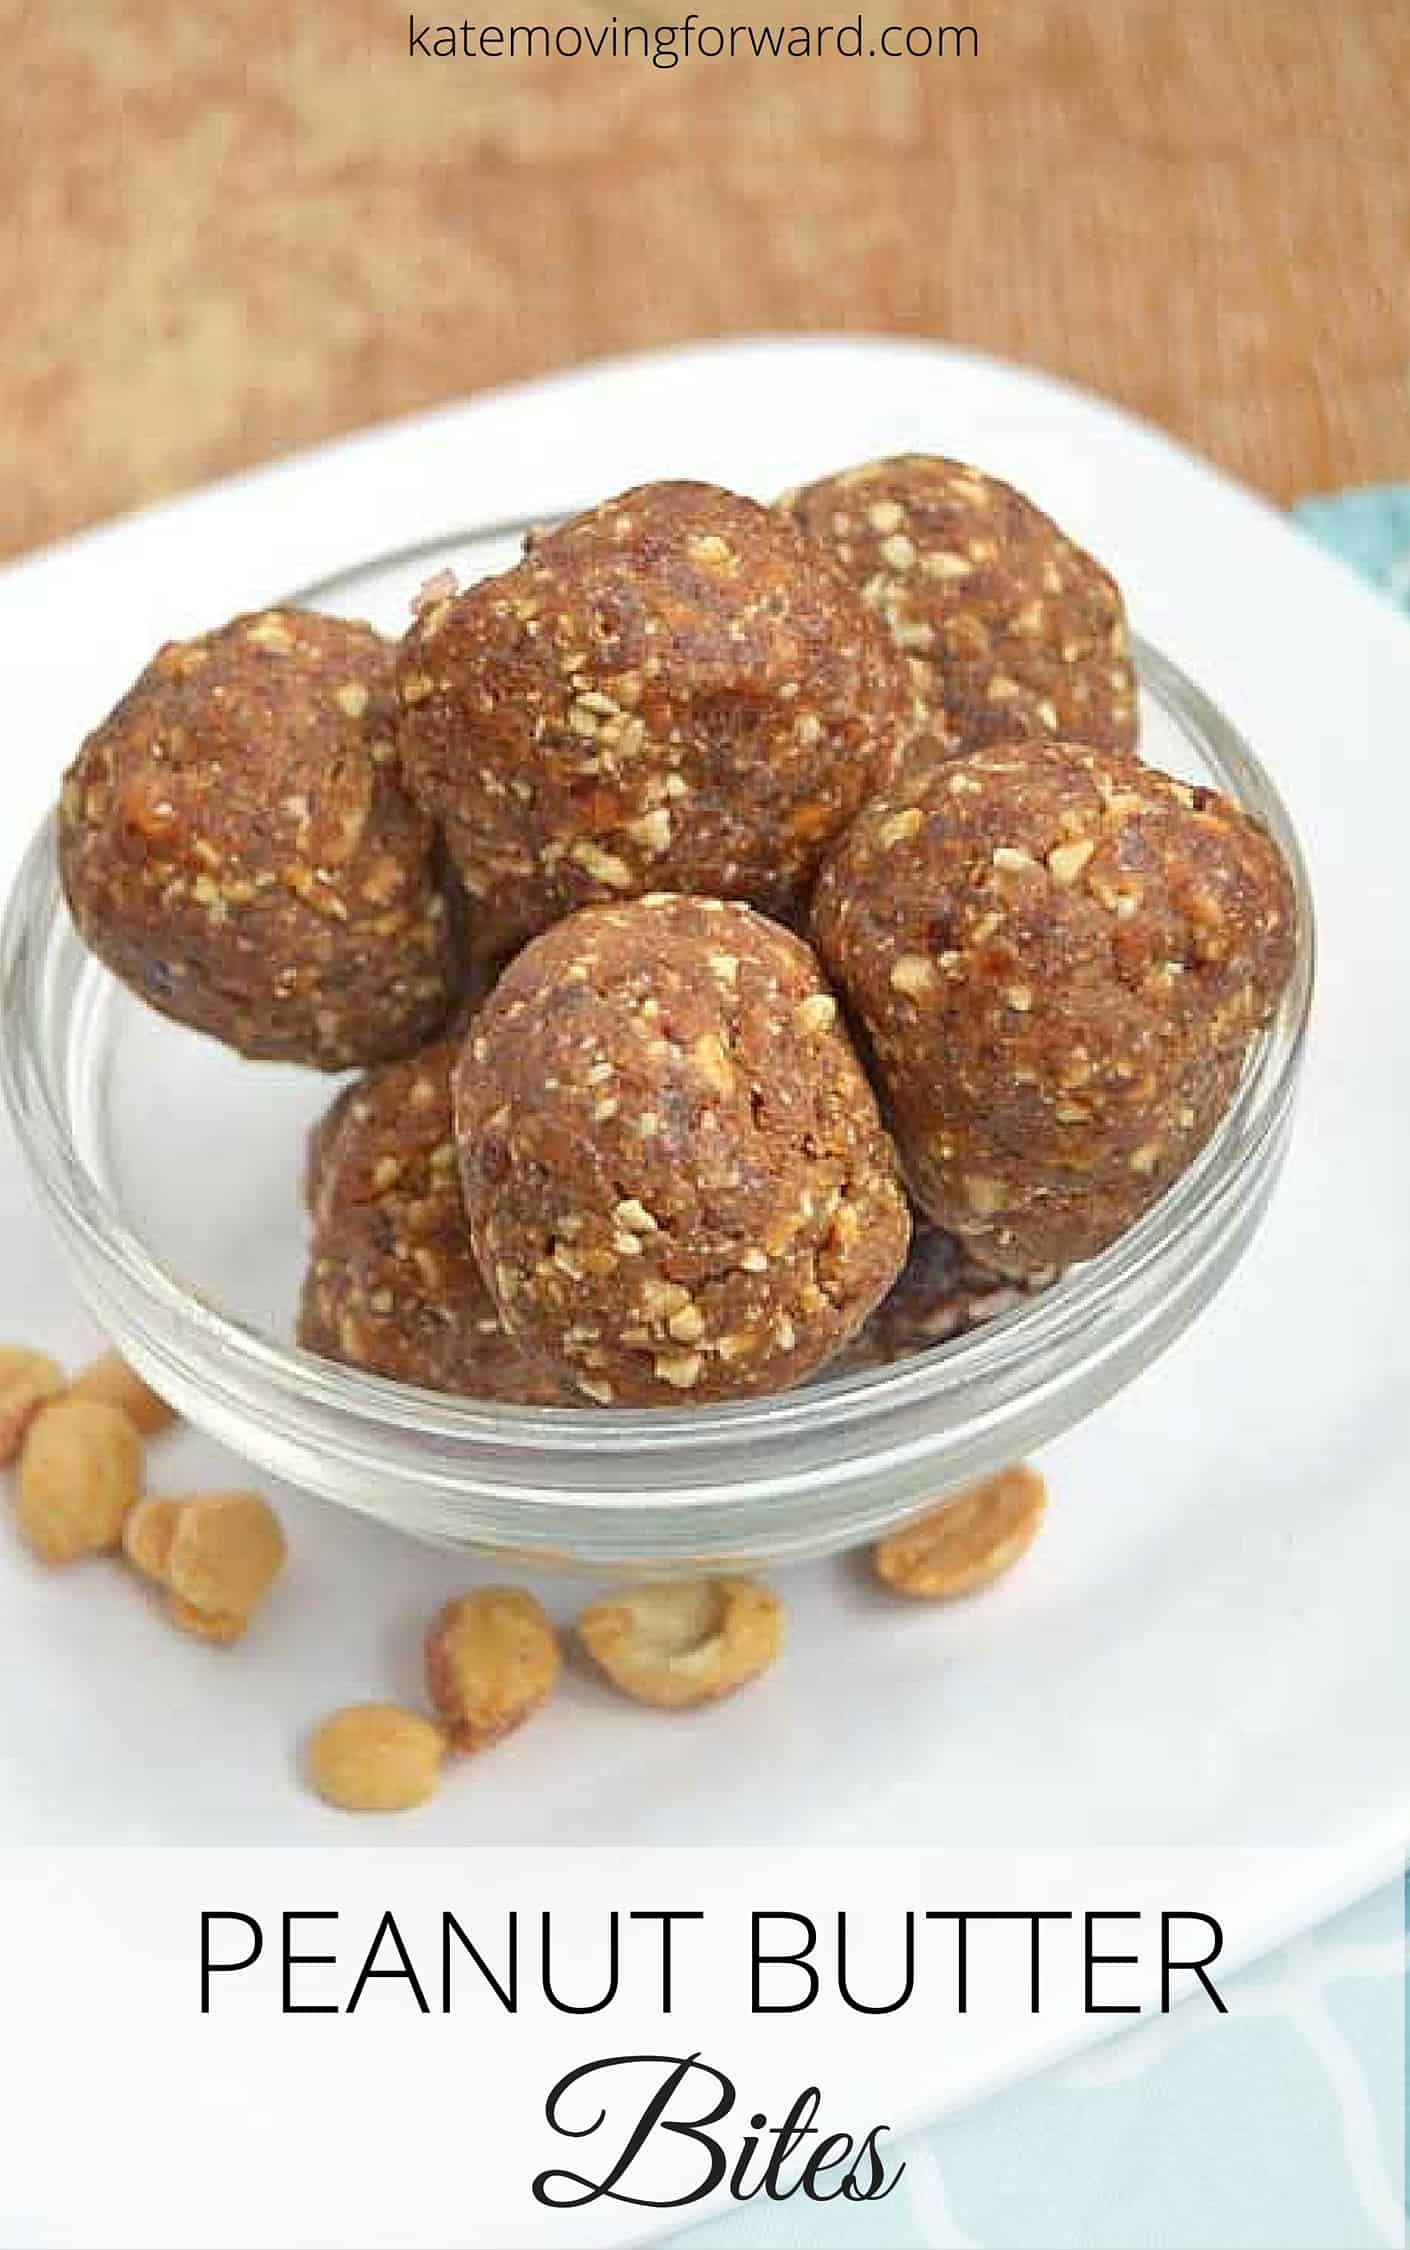 Peanut Butter Bites - a healthy and delicious on the go snack! No sugar, gluten or dairy! Quick & easy to make, kid friendly too!-can't wait to make these ASAP!